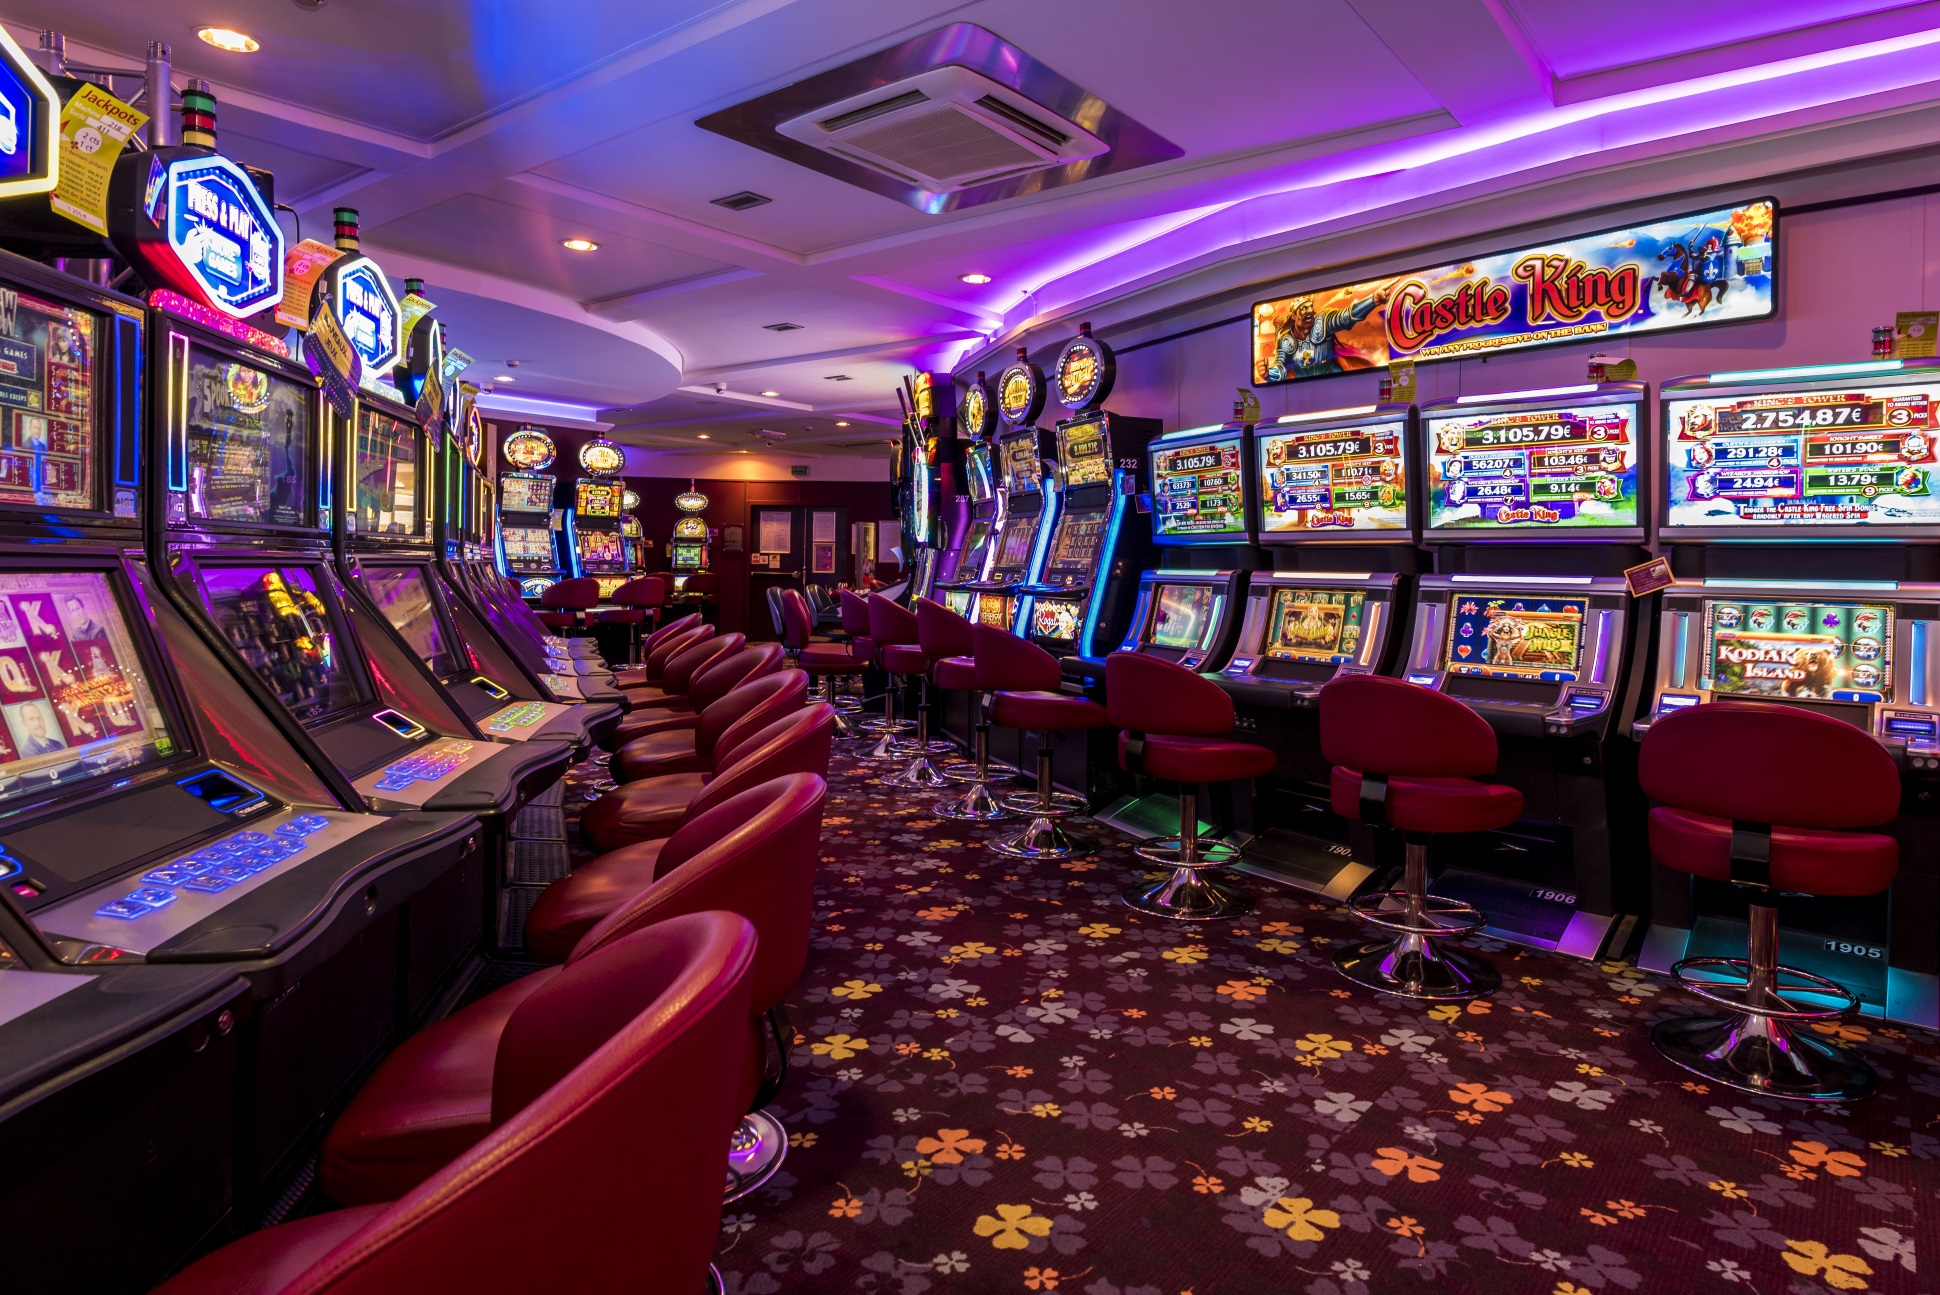 Get complete satisfaction on playing casino games online